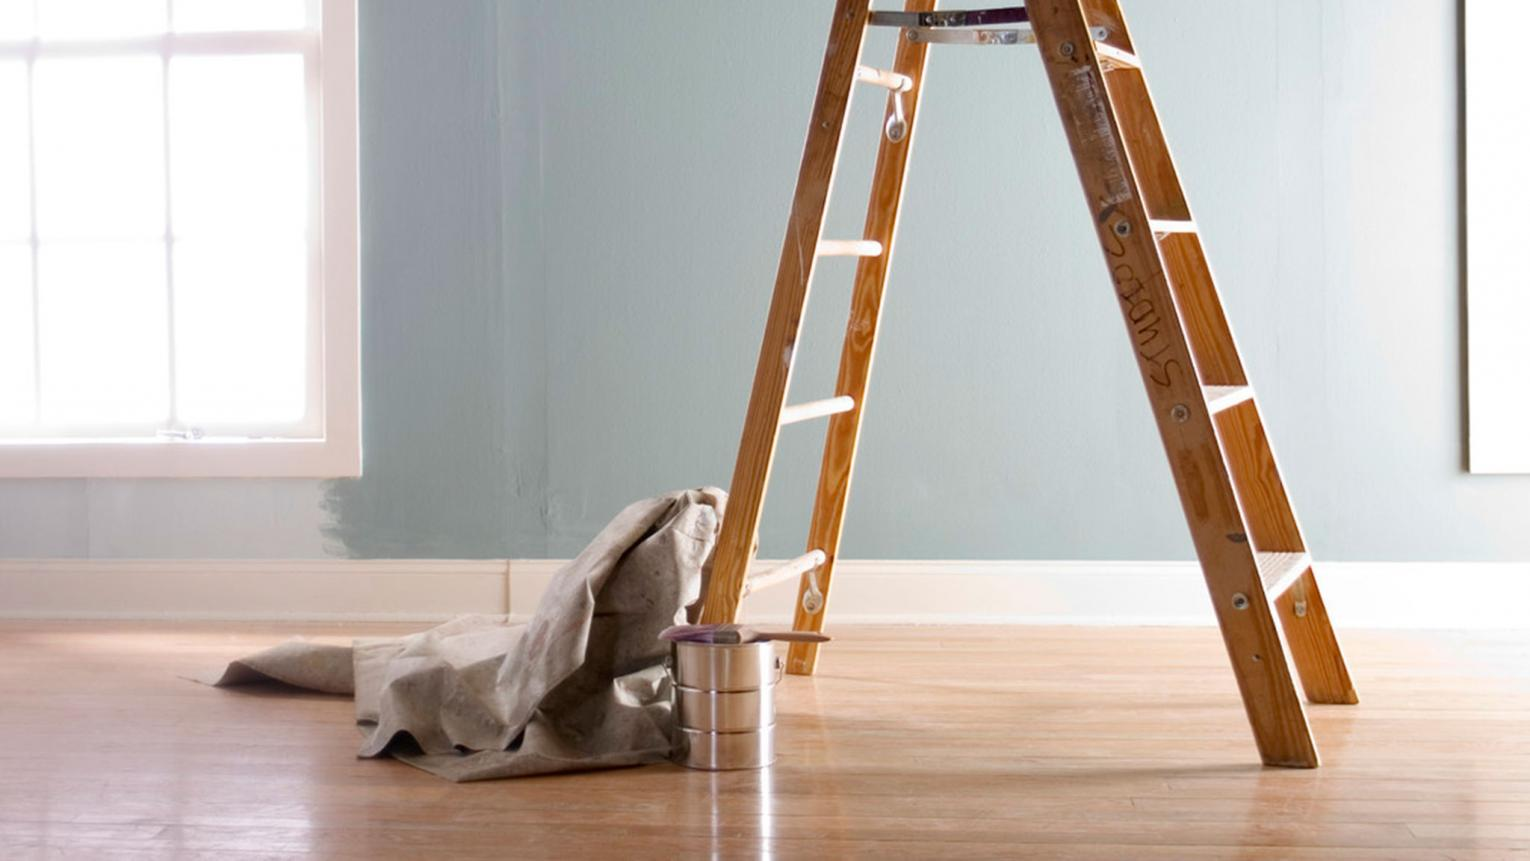 Preparing to paint your ceiling? Follow this step-by-step guide to achieving a flawless finish.